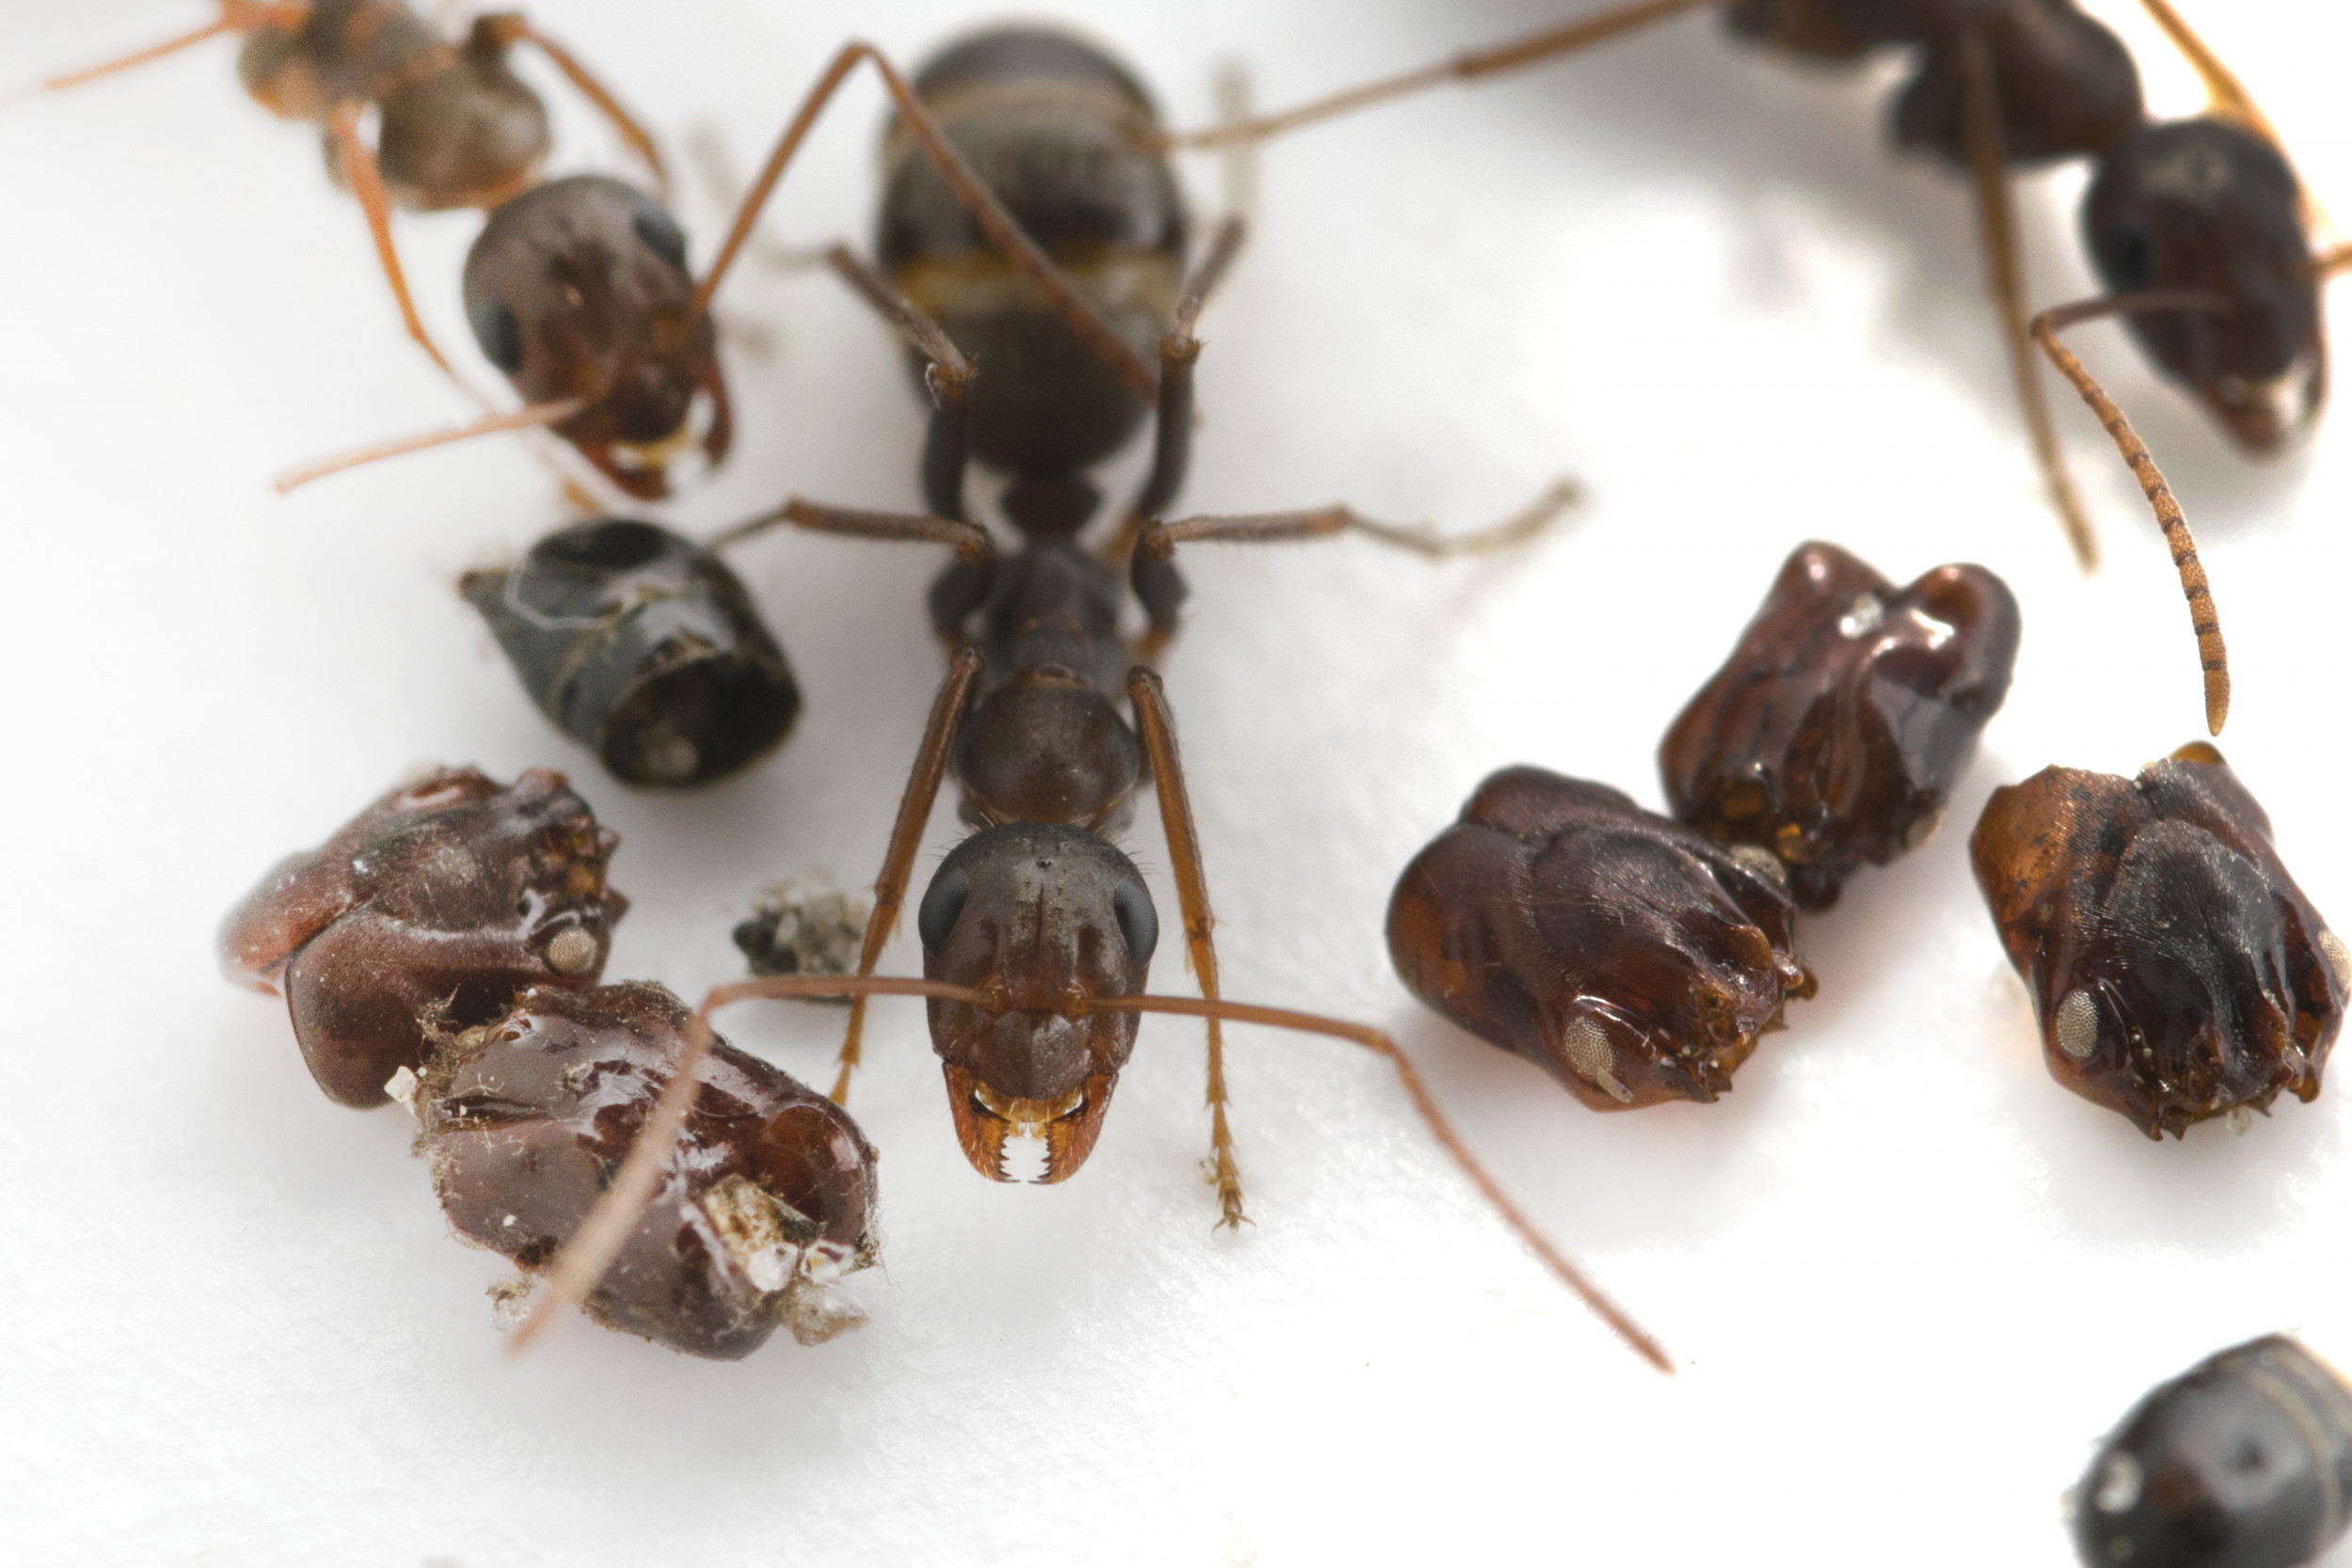 These ants spray their victims with acid before decorating their nests with their skulls